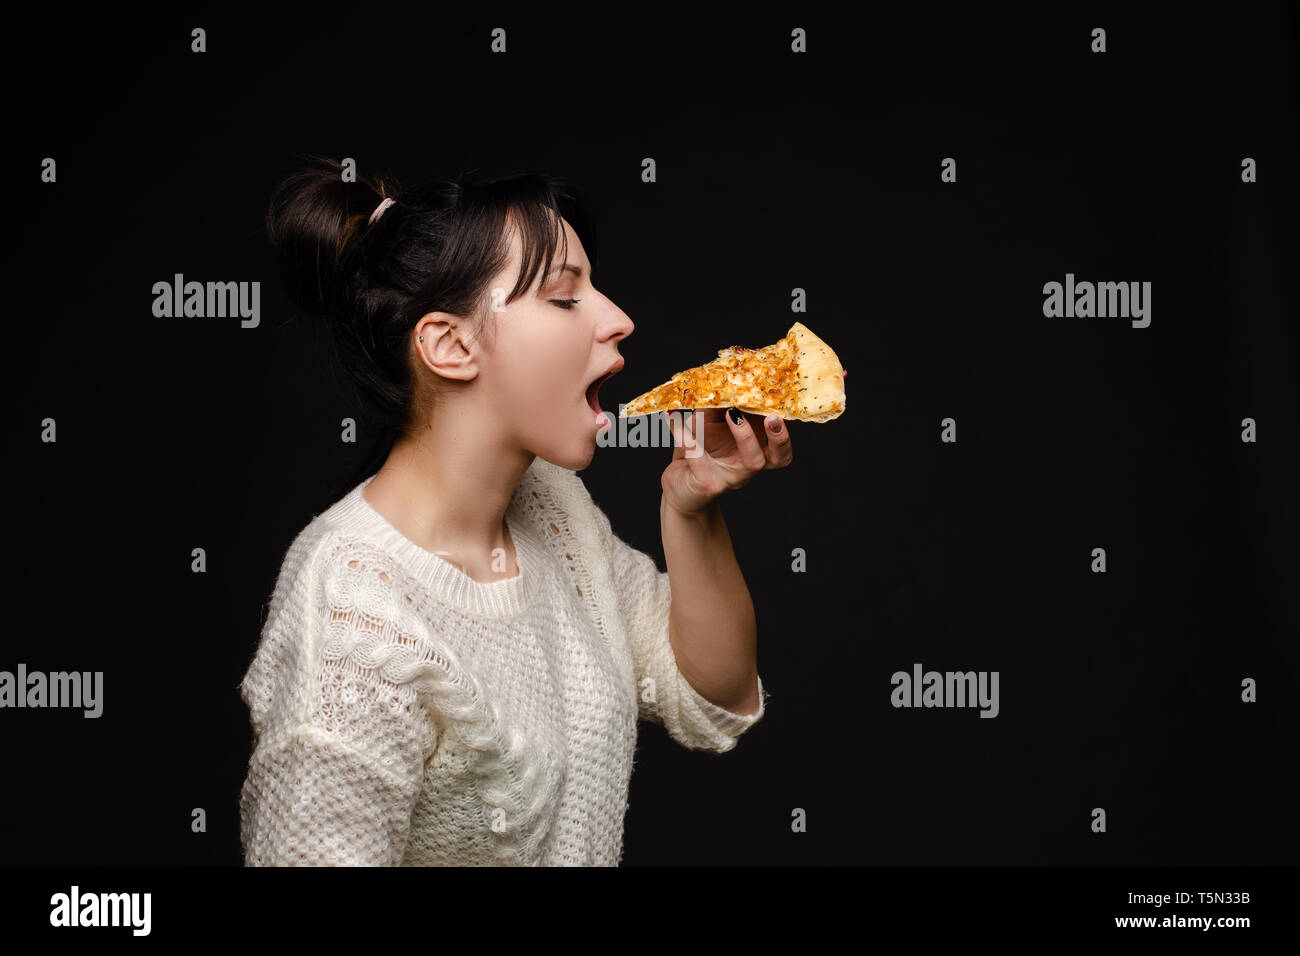 Young caucasian woman with tail eating piece of pizza. - Stock Image